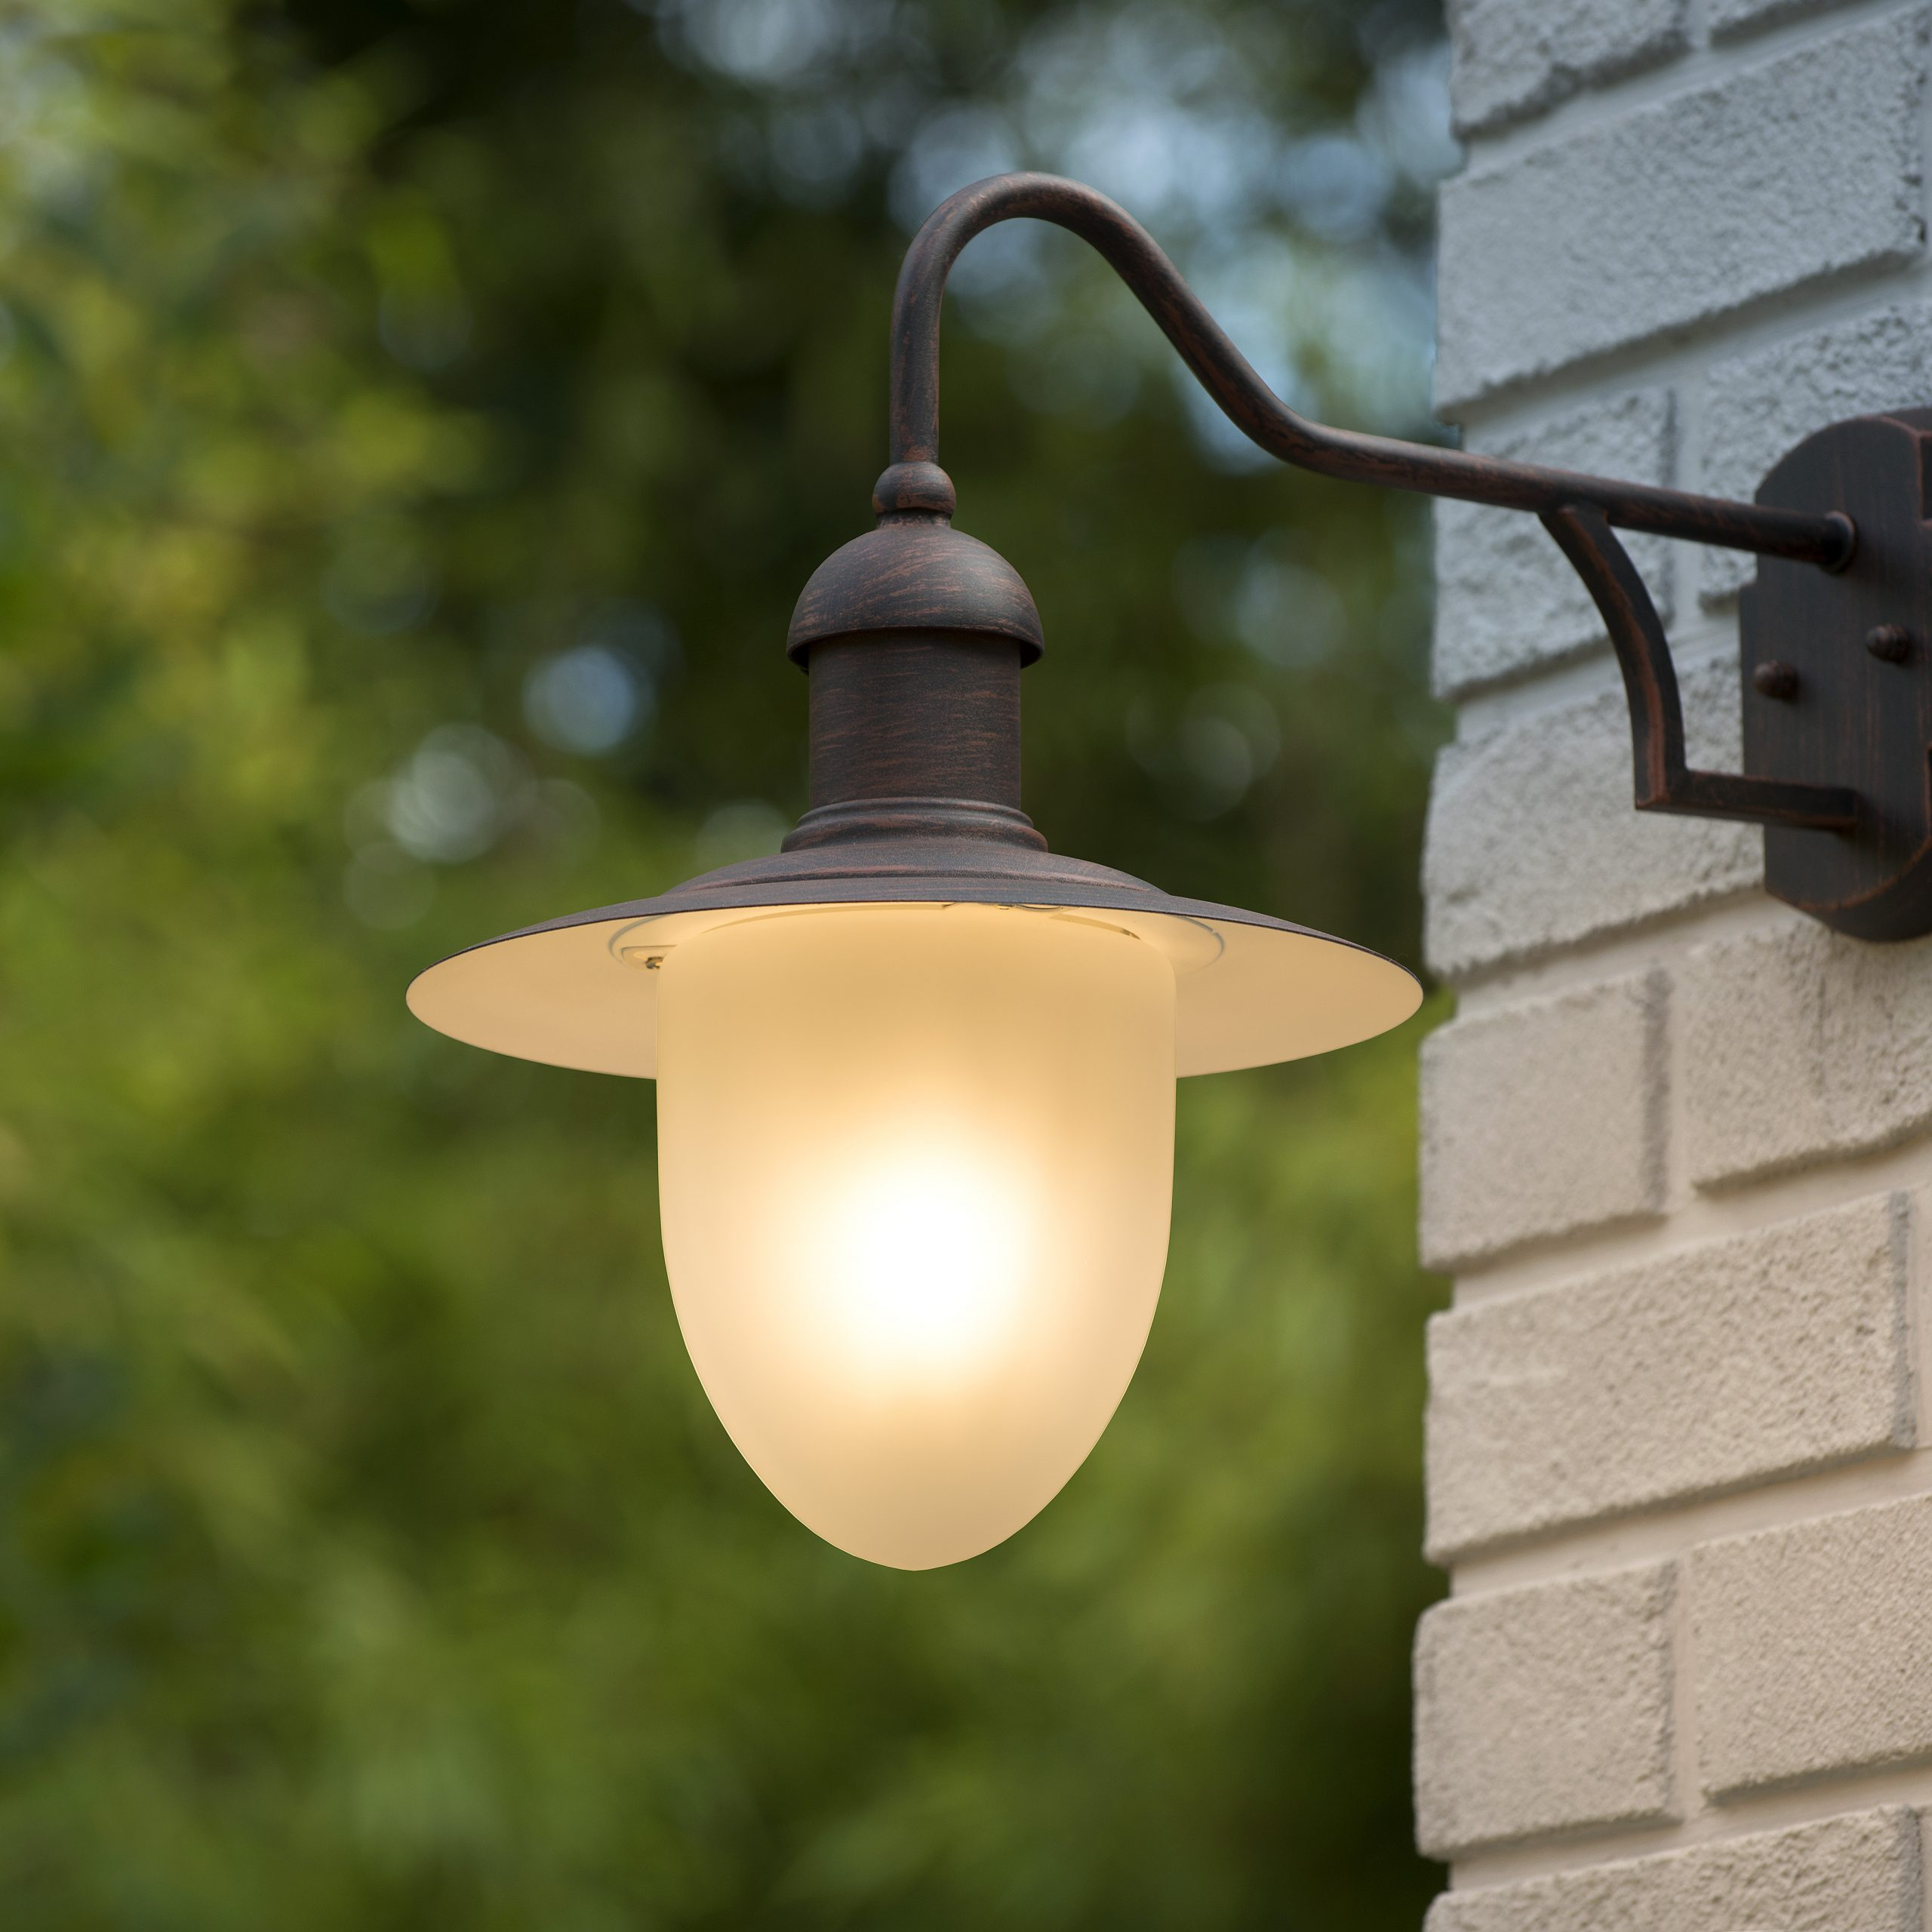 Aruba – Wall Light Outdoor – Ø 25 Cm – 1xe27 – Ip44 – Rust Within Fashionable Brookland Outdoor Wall Lanterns (View 14 of 20)